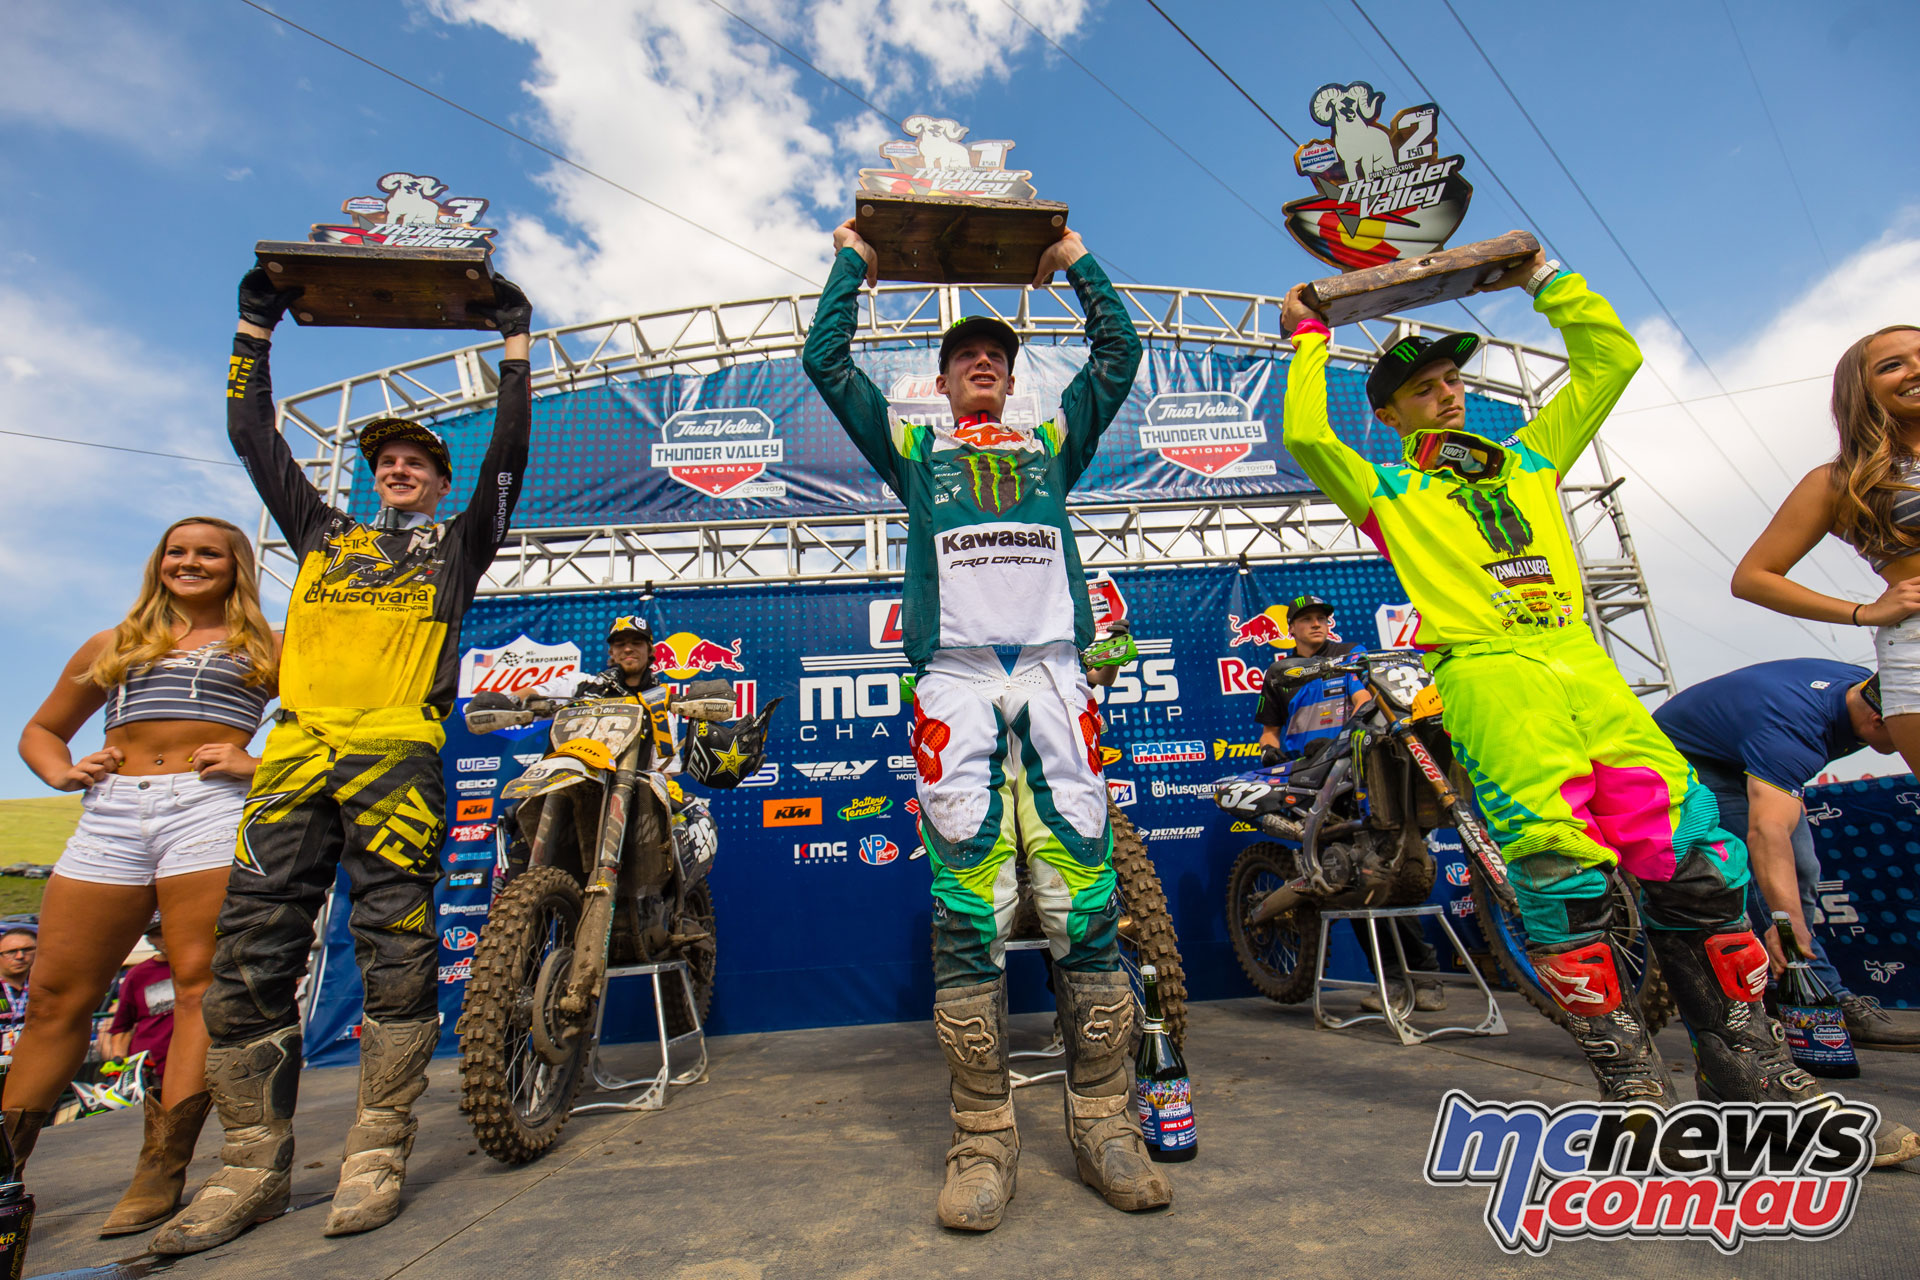 AMA MX Rnd Thunder Valley Podium JK MX Lakewood